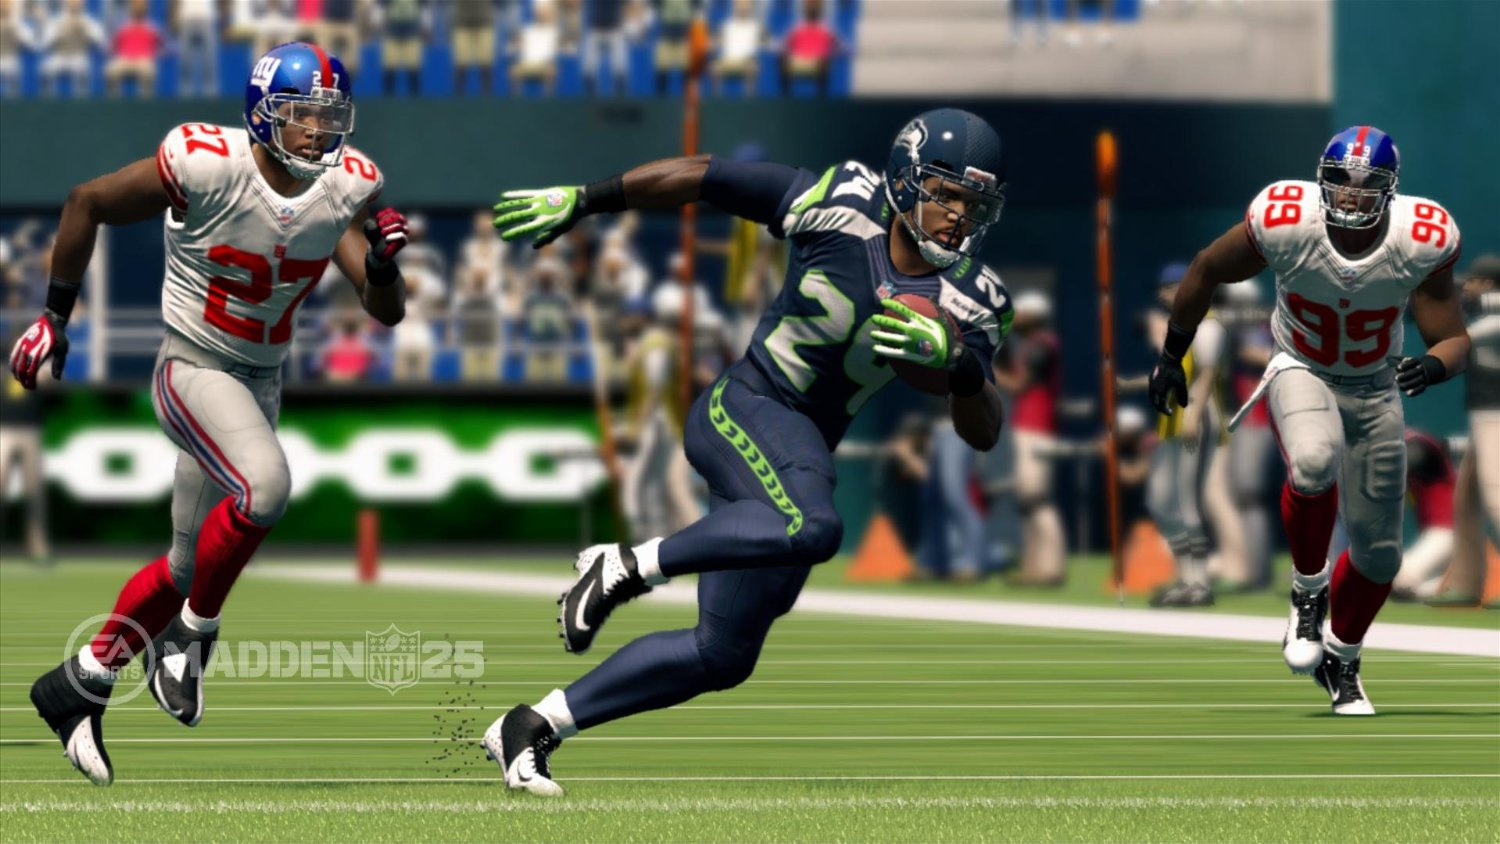 Top 5 Players and Teams for Connected Franchise in Madden 25